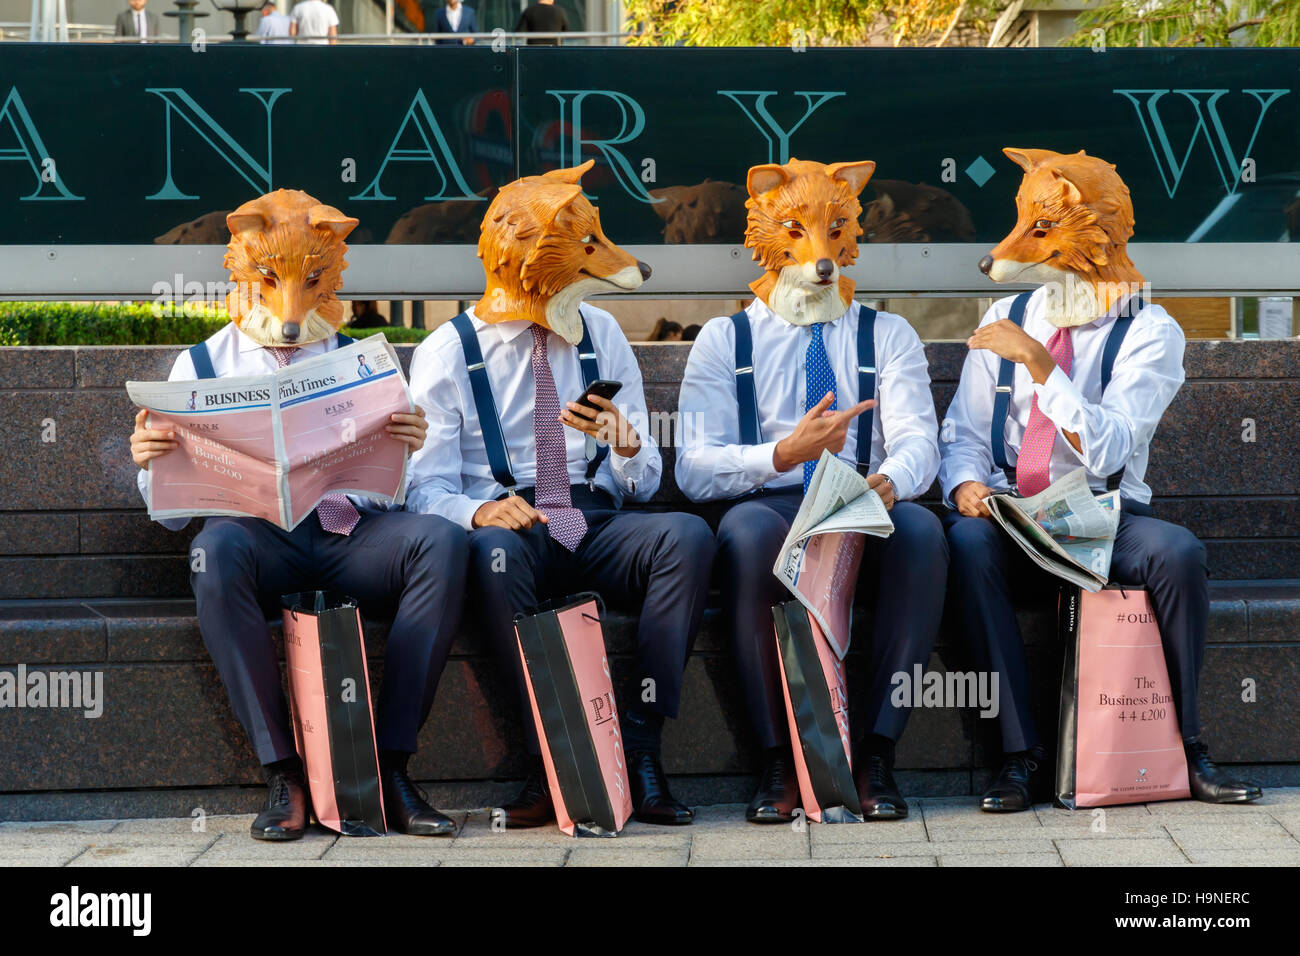 London, UK - September 21, 2016 - Quirky street promotional campaign from Thomas Pink in Canary Wharf - Stock Image